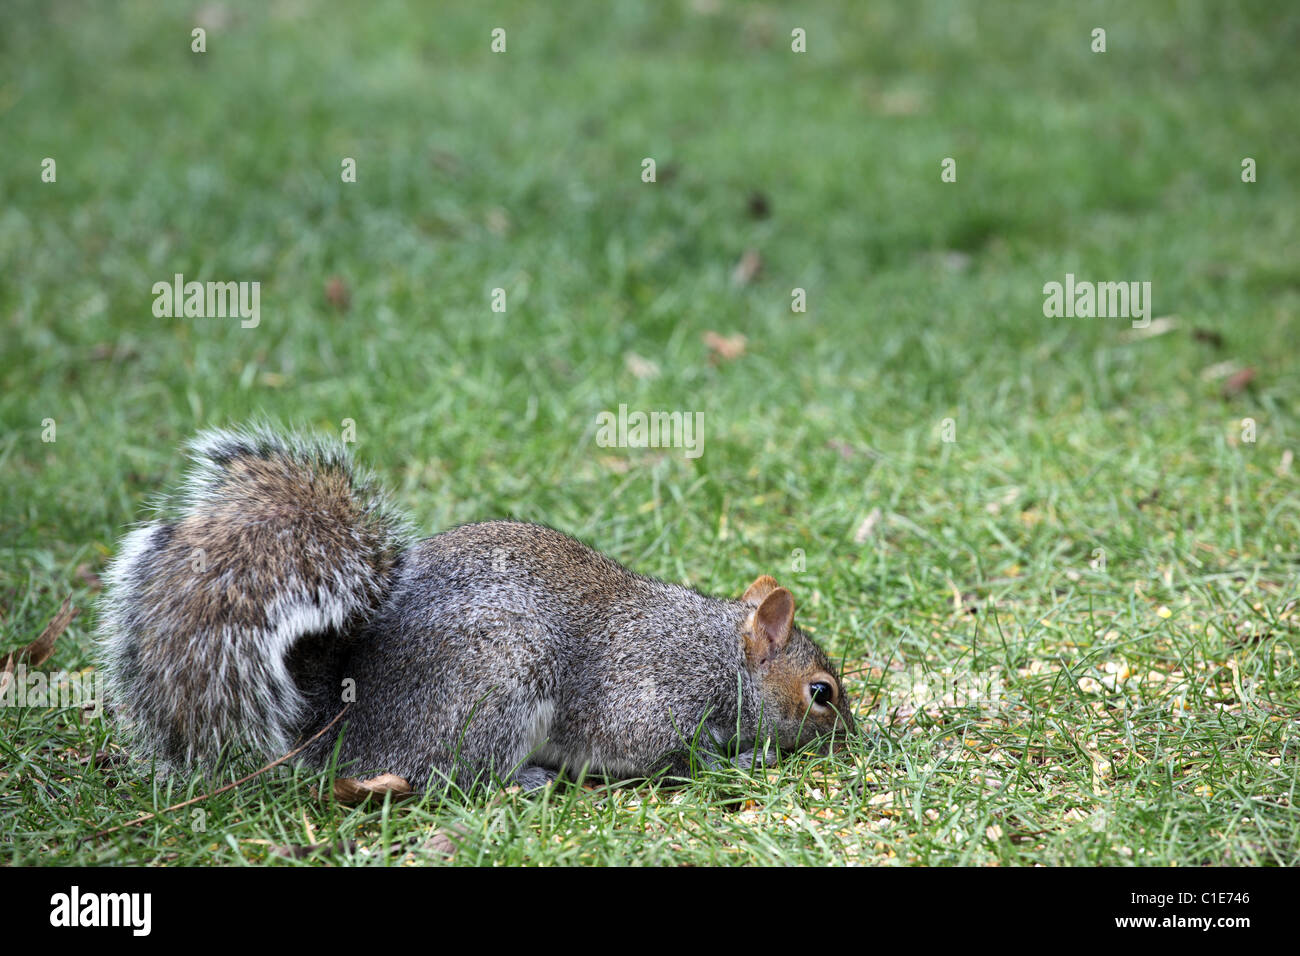 BHZ Close up of a Grey Squirrel (sciurus carolinensis) against a blurred green background - Stock Image